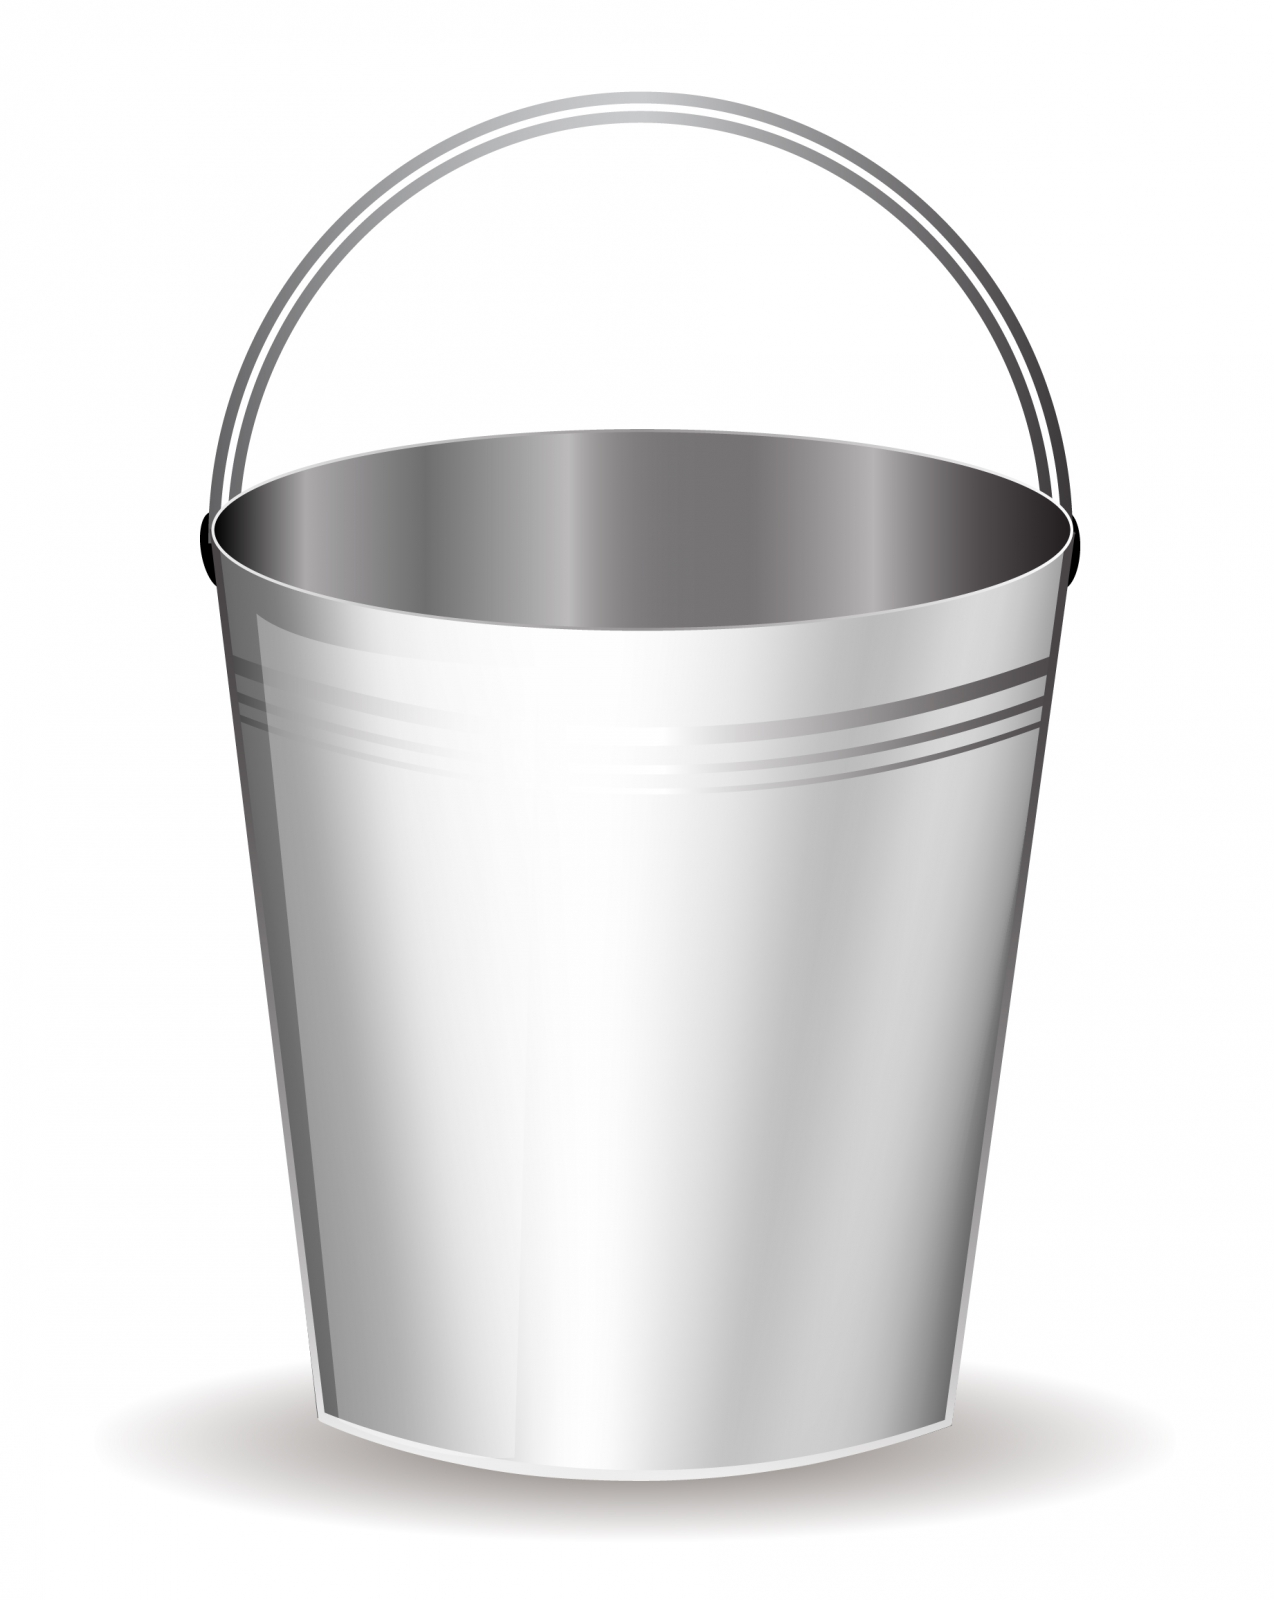 Tin bucket of water clipart clip art black and white Free White Bucket Cliparts, Download Free Clip Art, Free ... clip art black and white